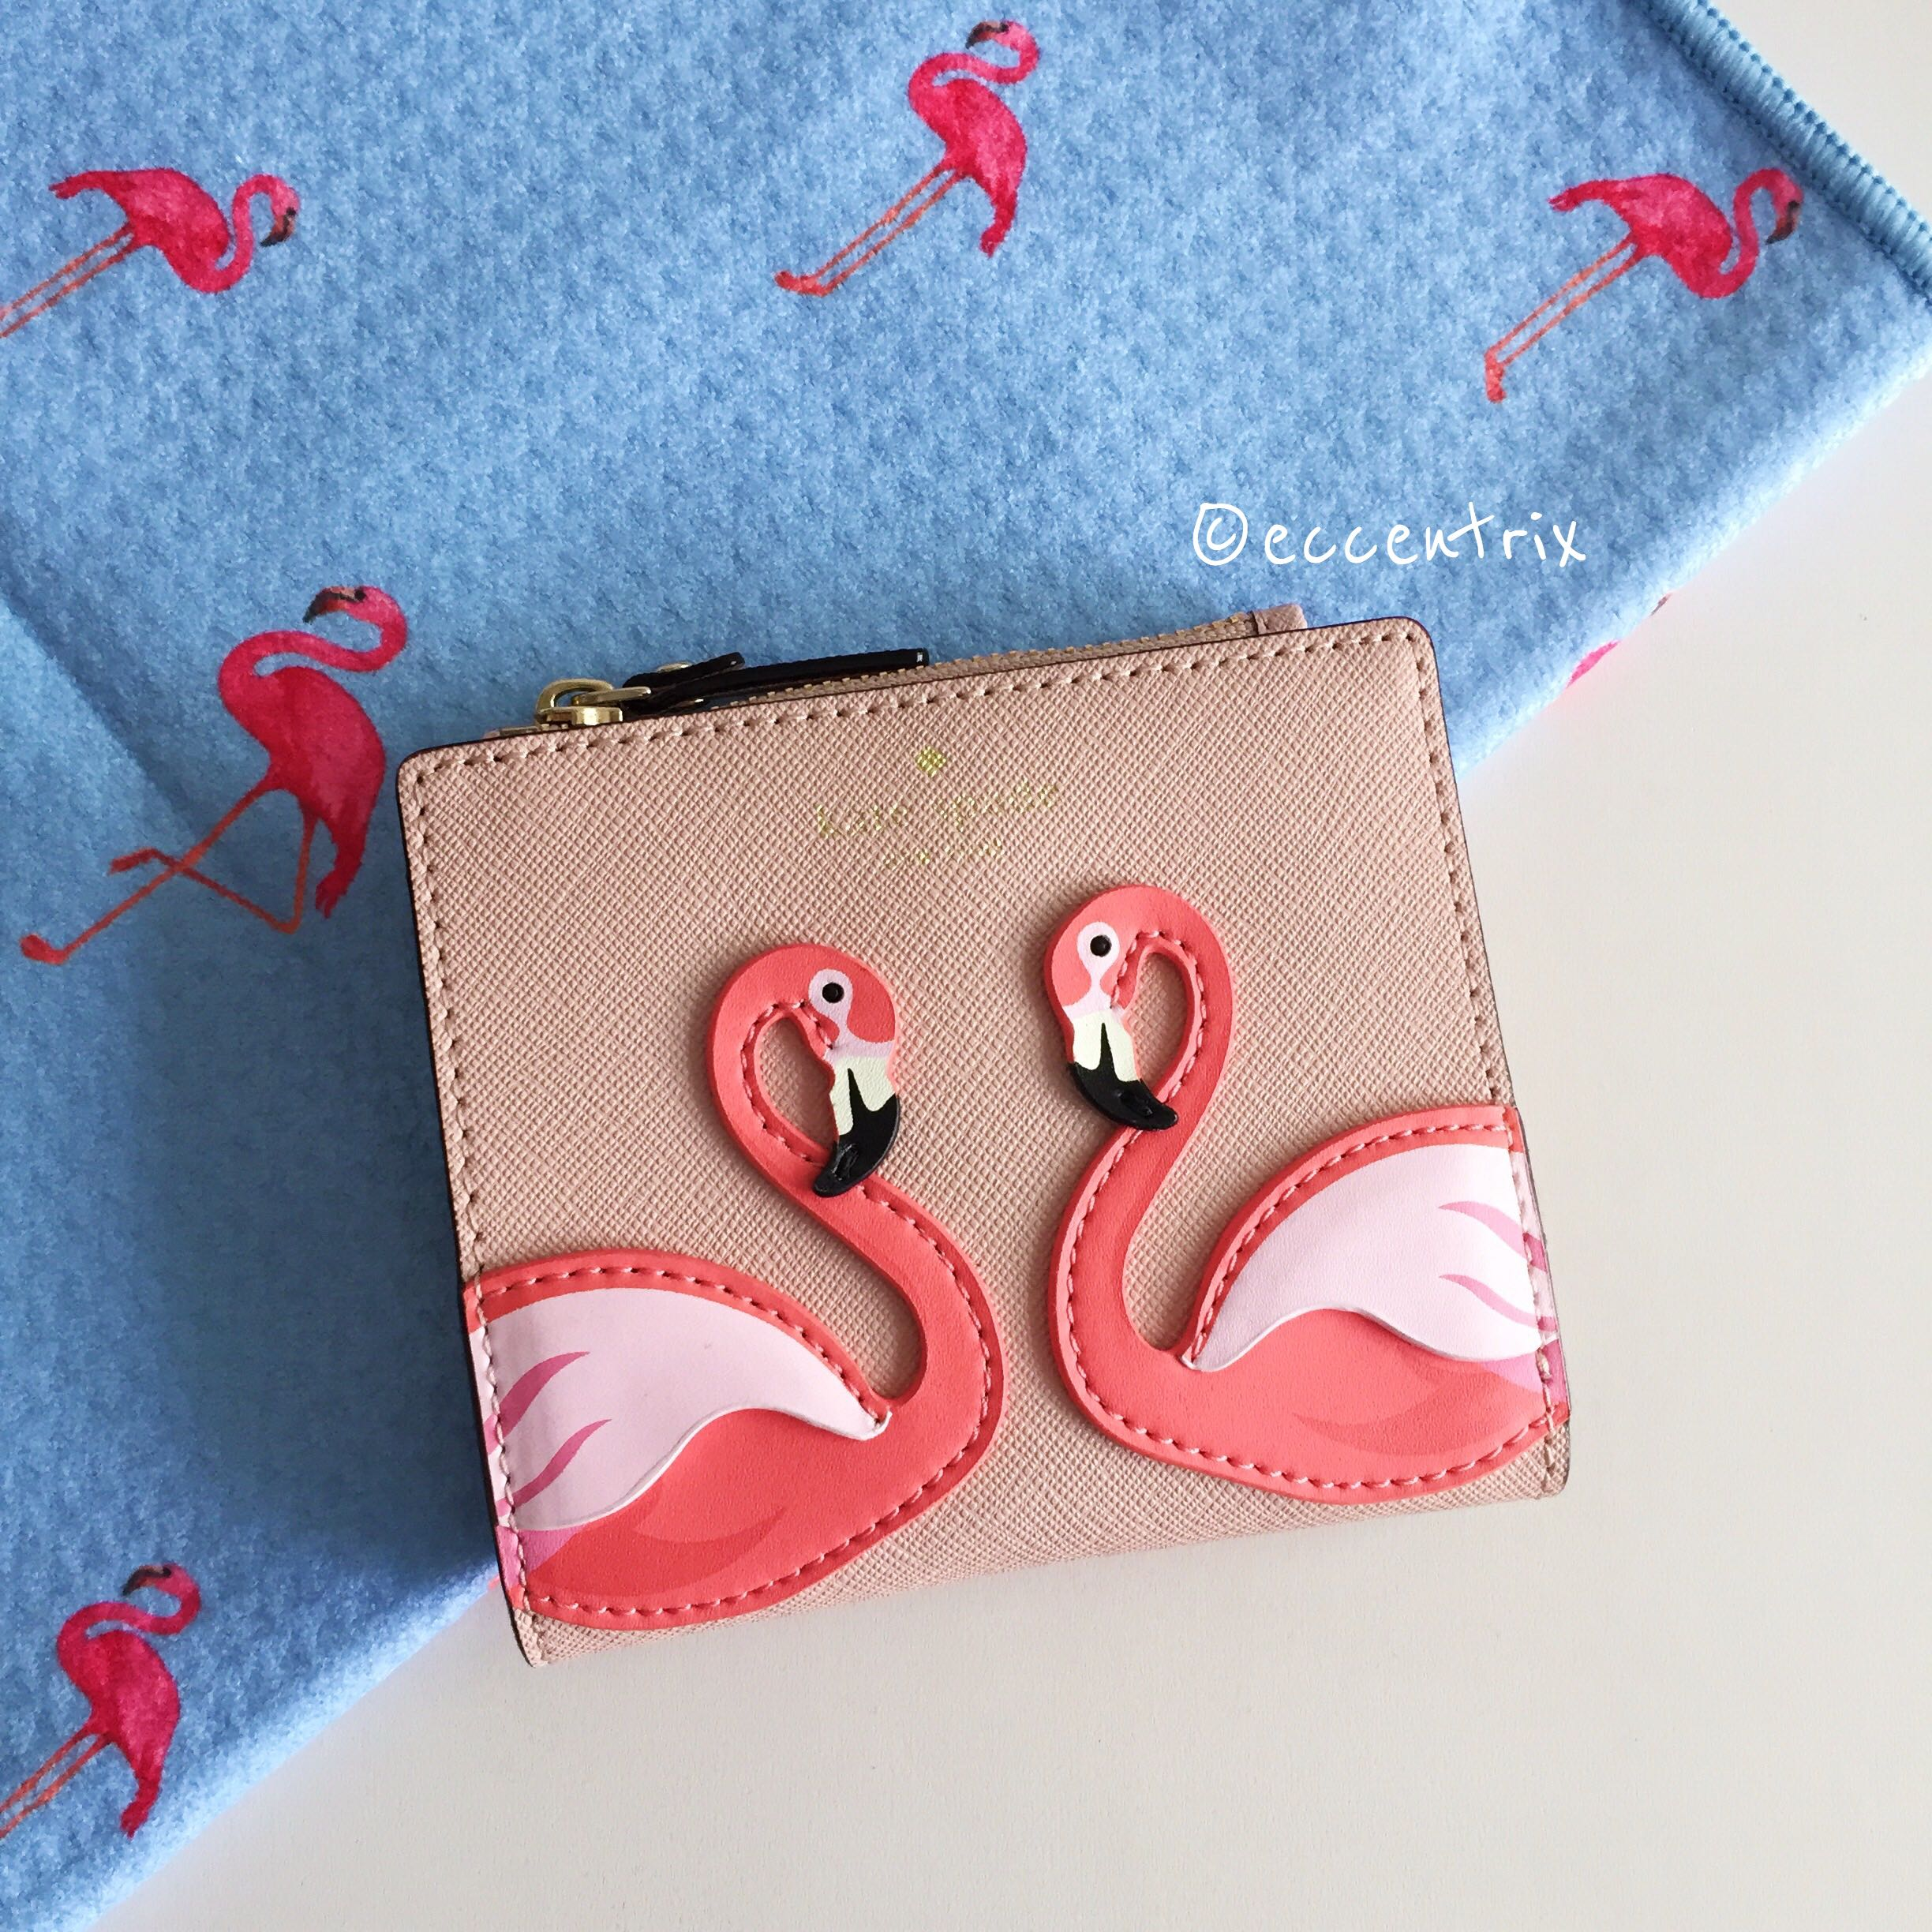 By The Pool Flamingo Kate Spade Kate Spade By The Pool Flamingo Adalyn Small Wallet Luxury Bags